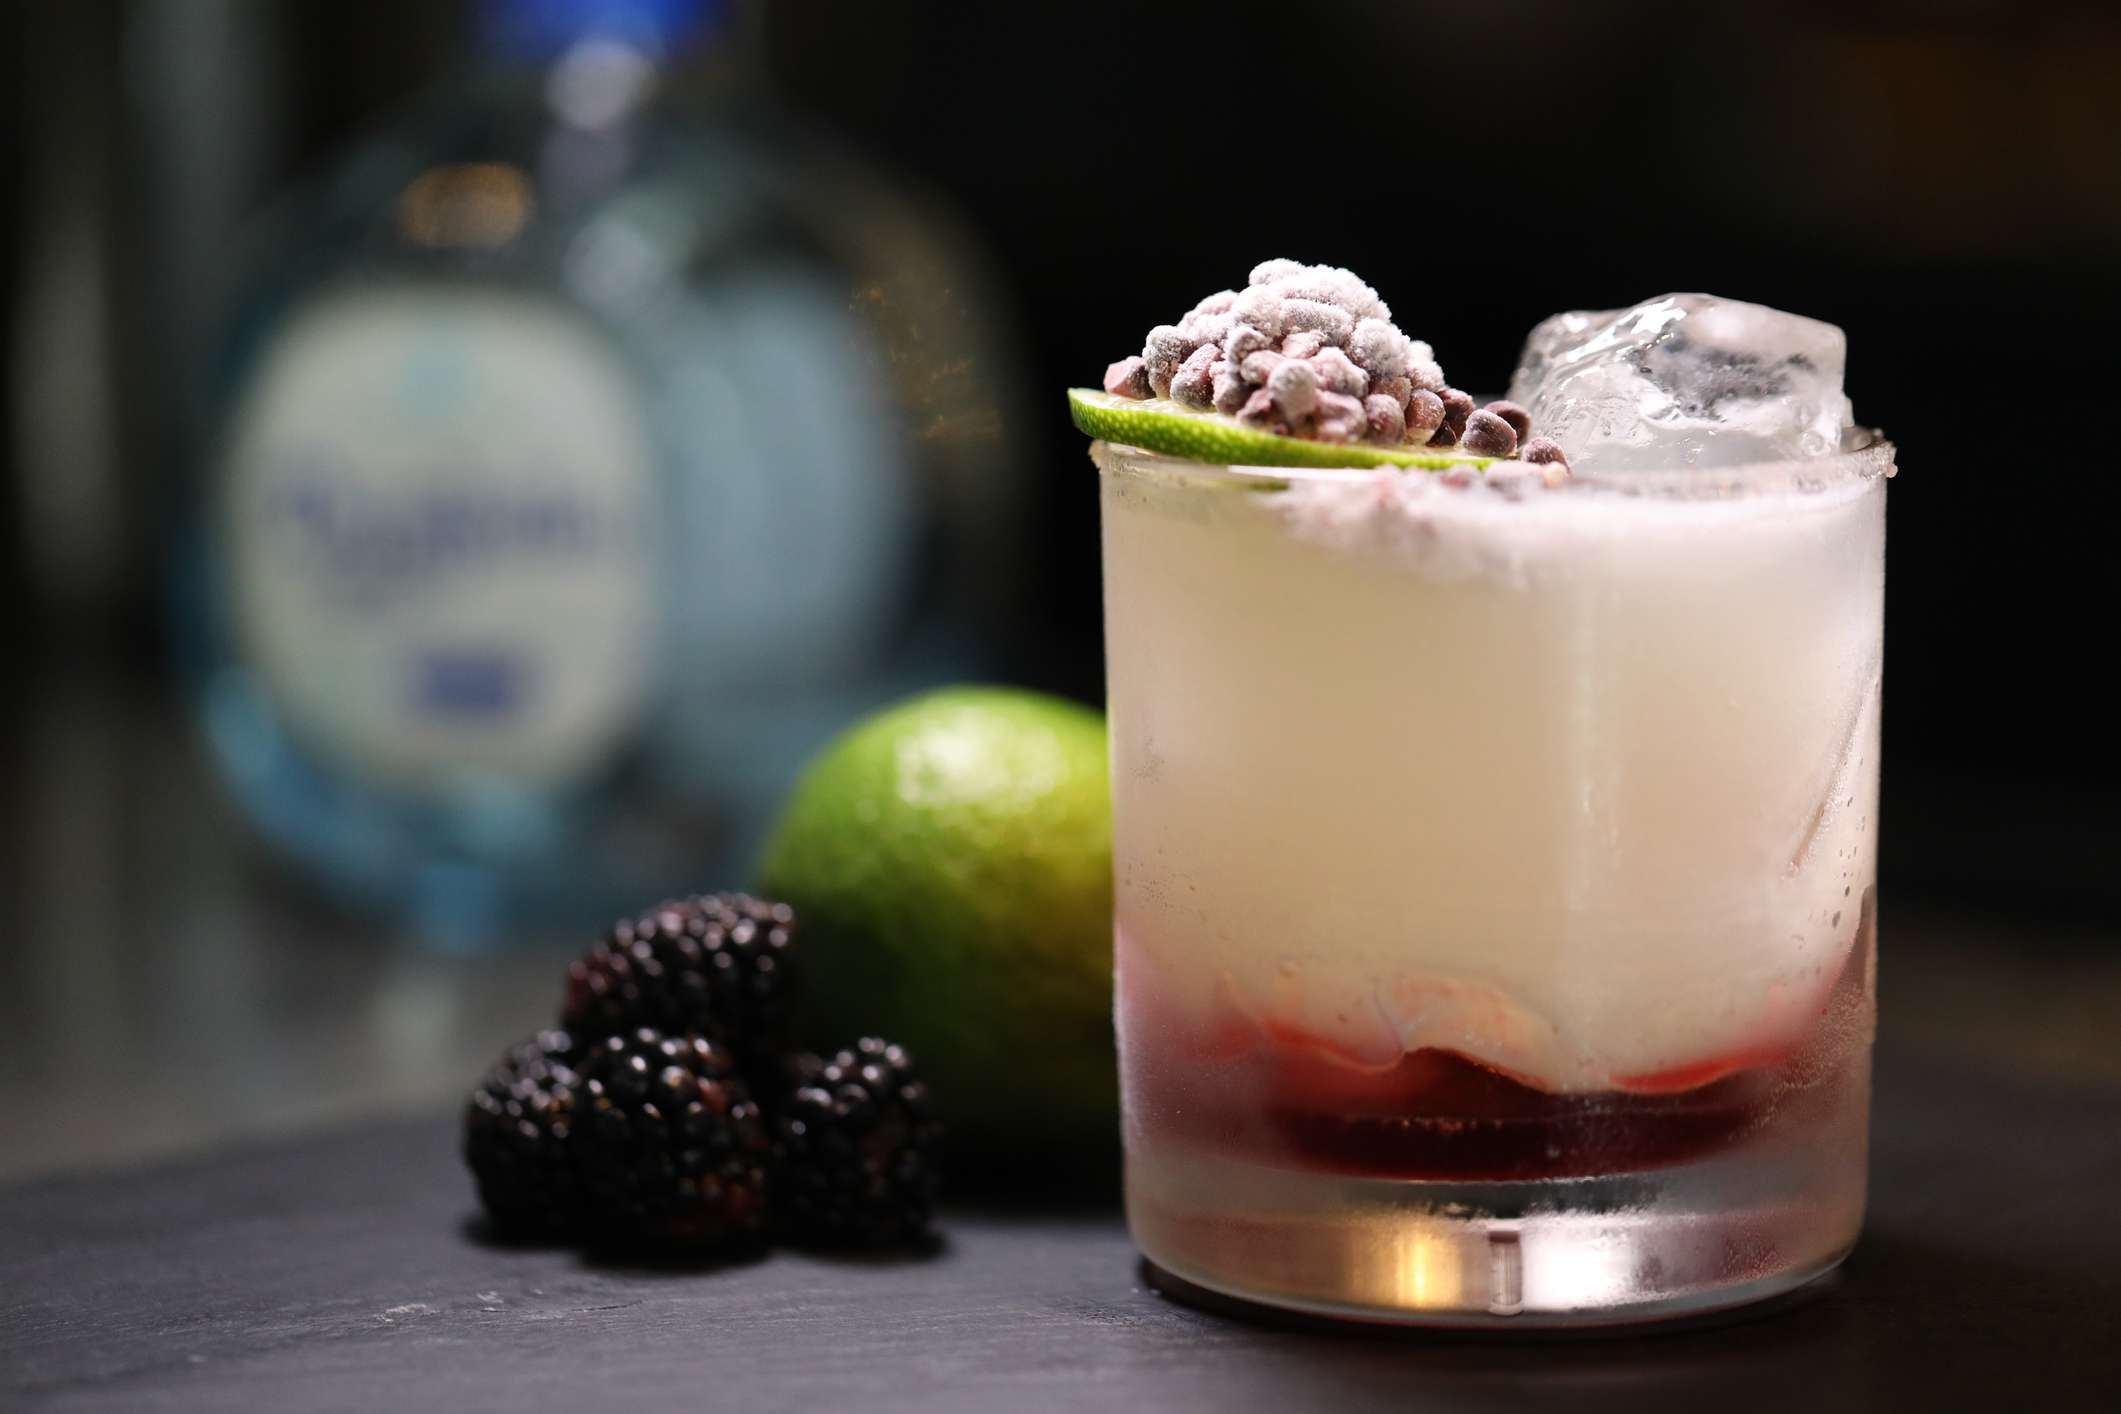 A blackberry and lime tequila cocktail poured over ice and garnished with dry ice